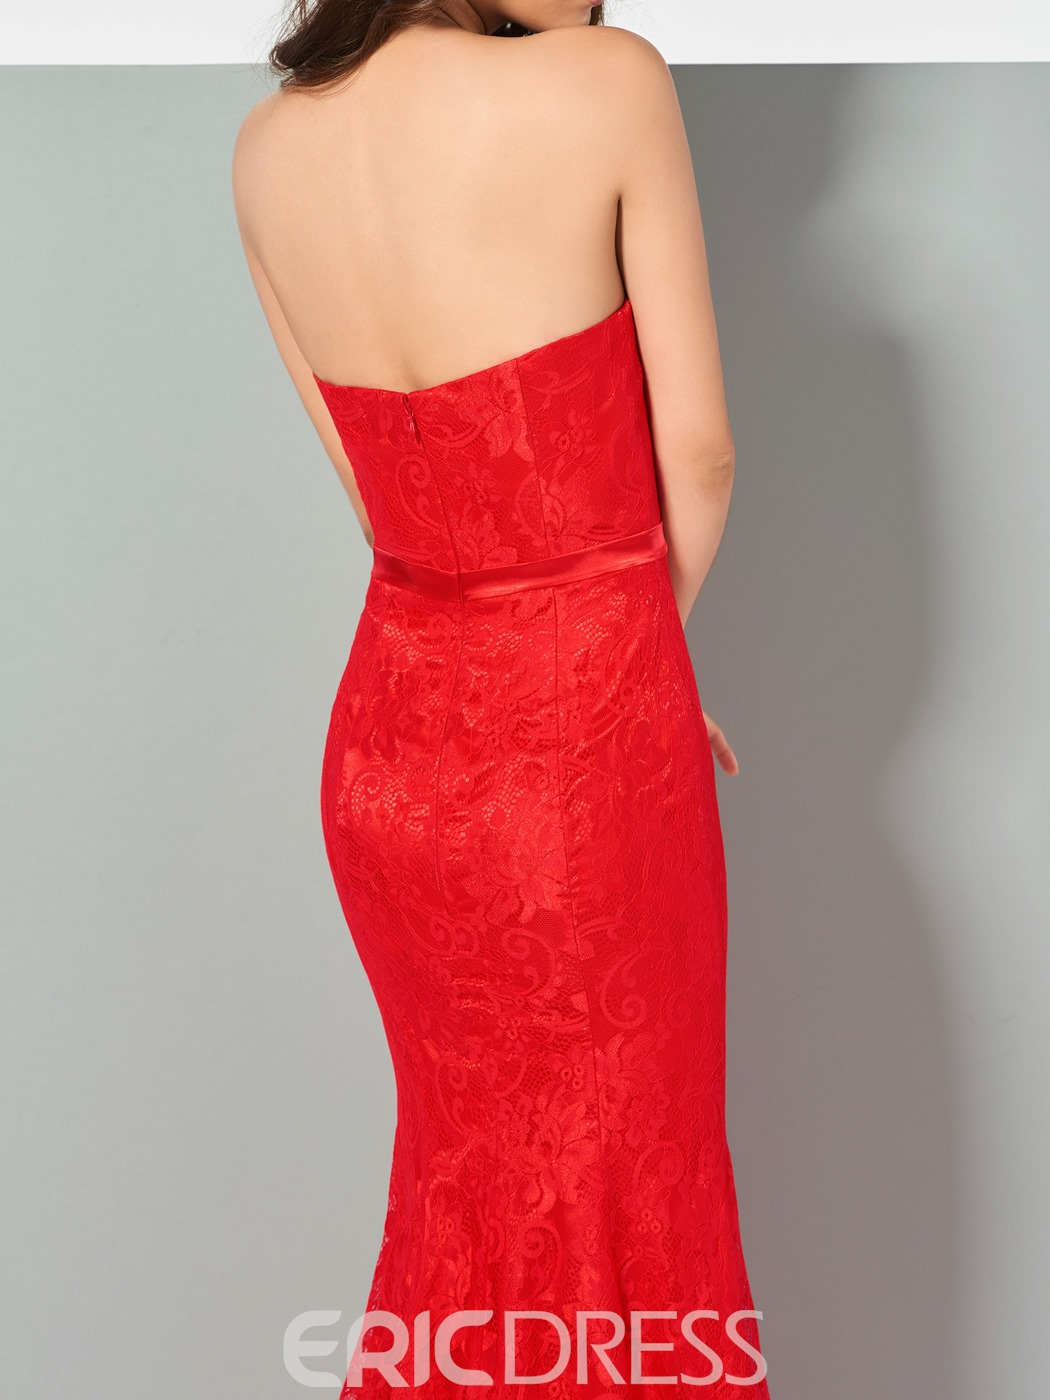 Ericdress Mermaid Strapless Lace Evening Dress In Floor Length